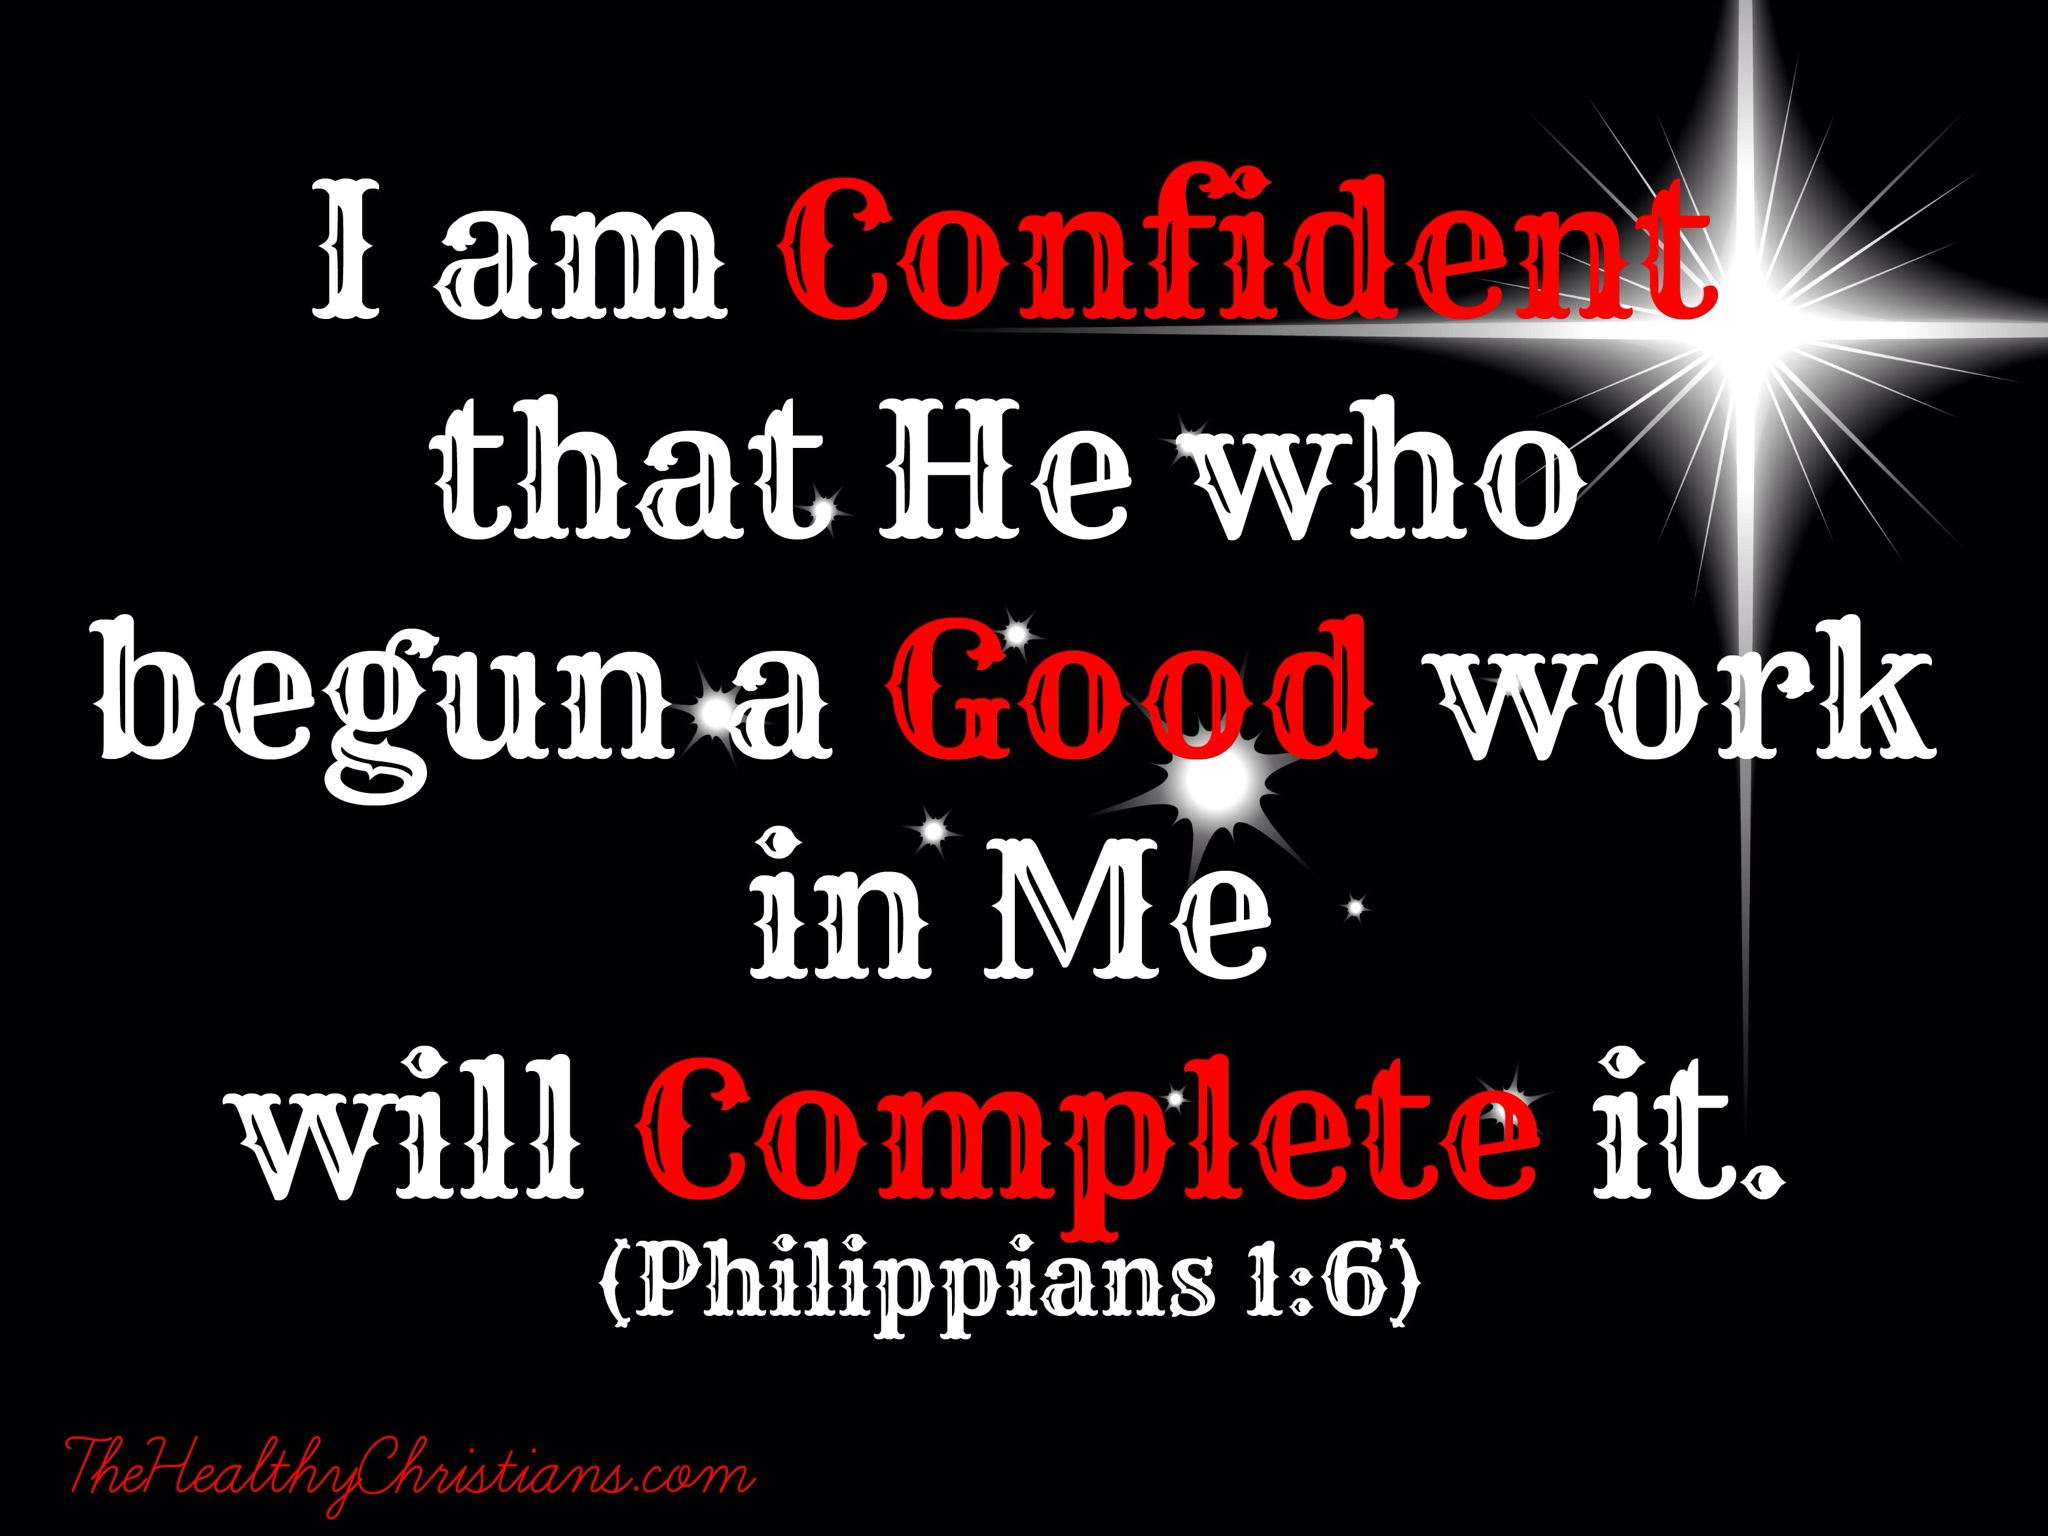 philippians 1 6 4givenministry